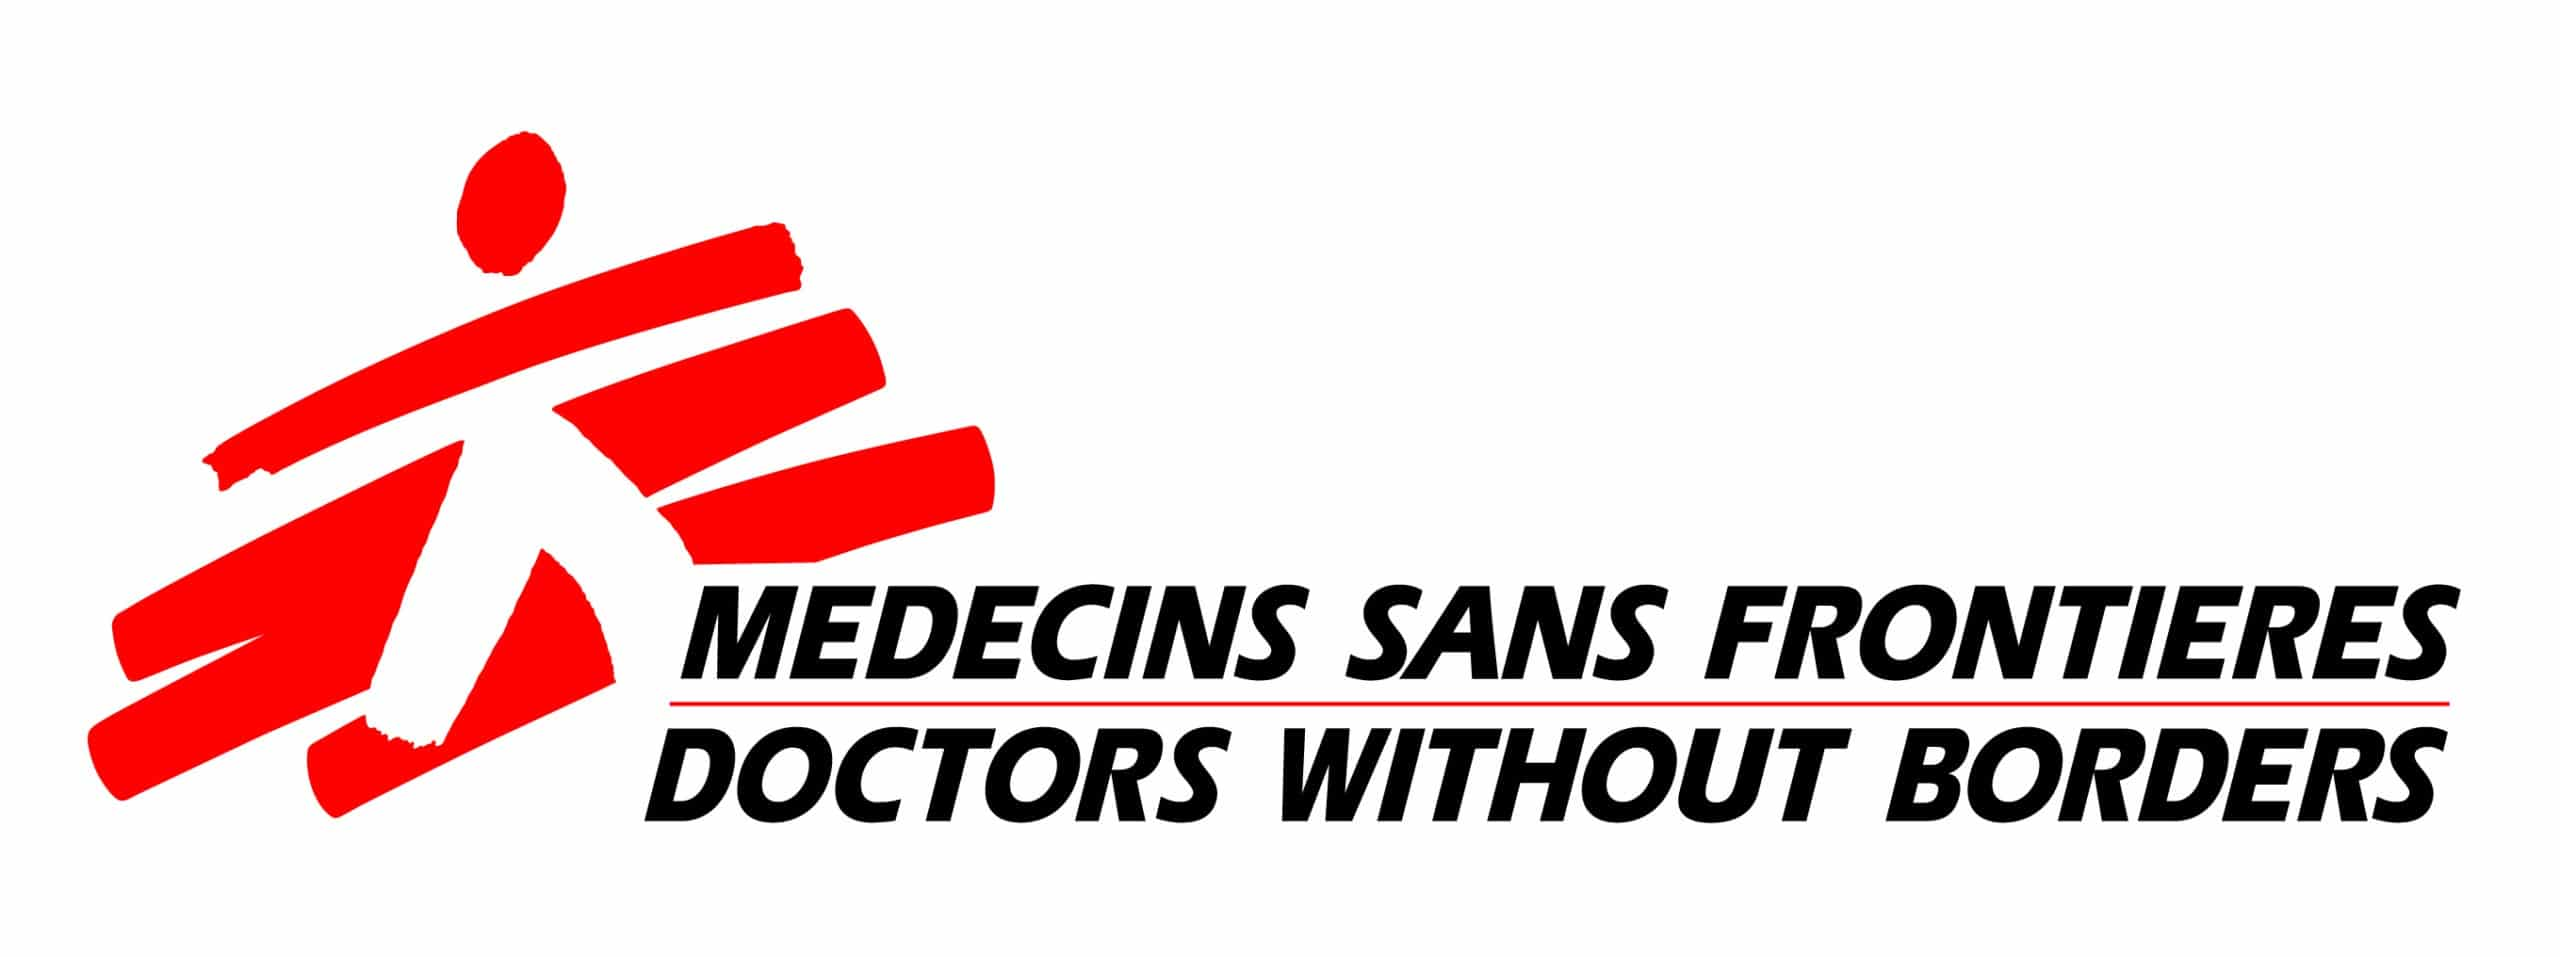 Doctors Without Borders Fellowship For Journalists In Southern Africa And India 2018